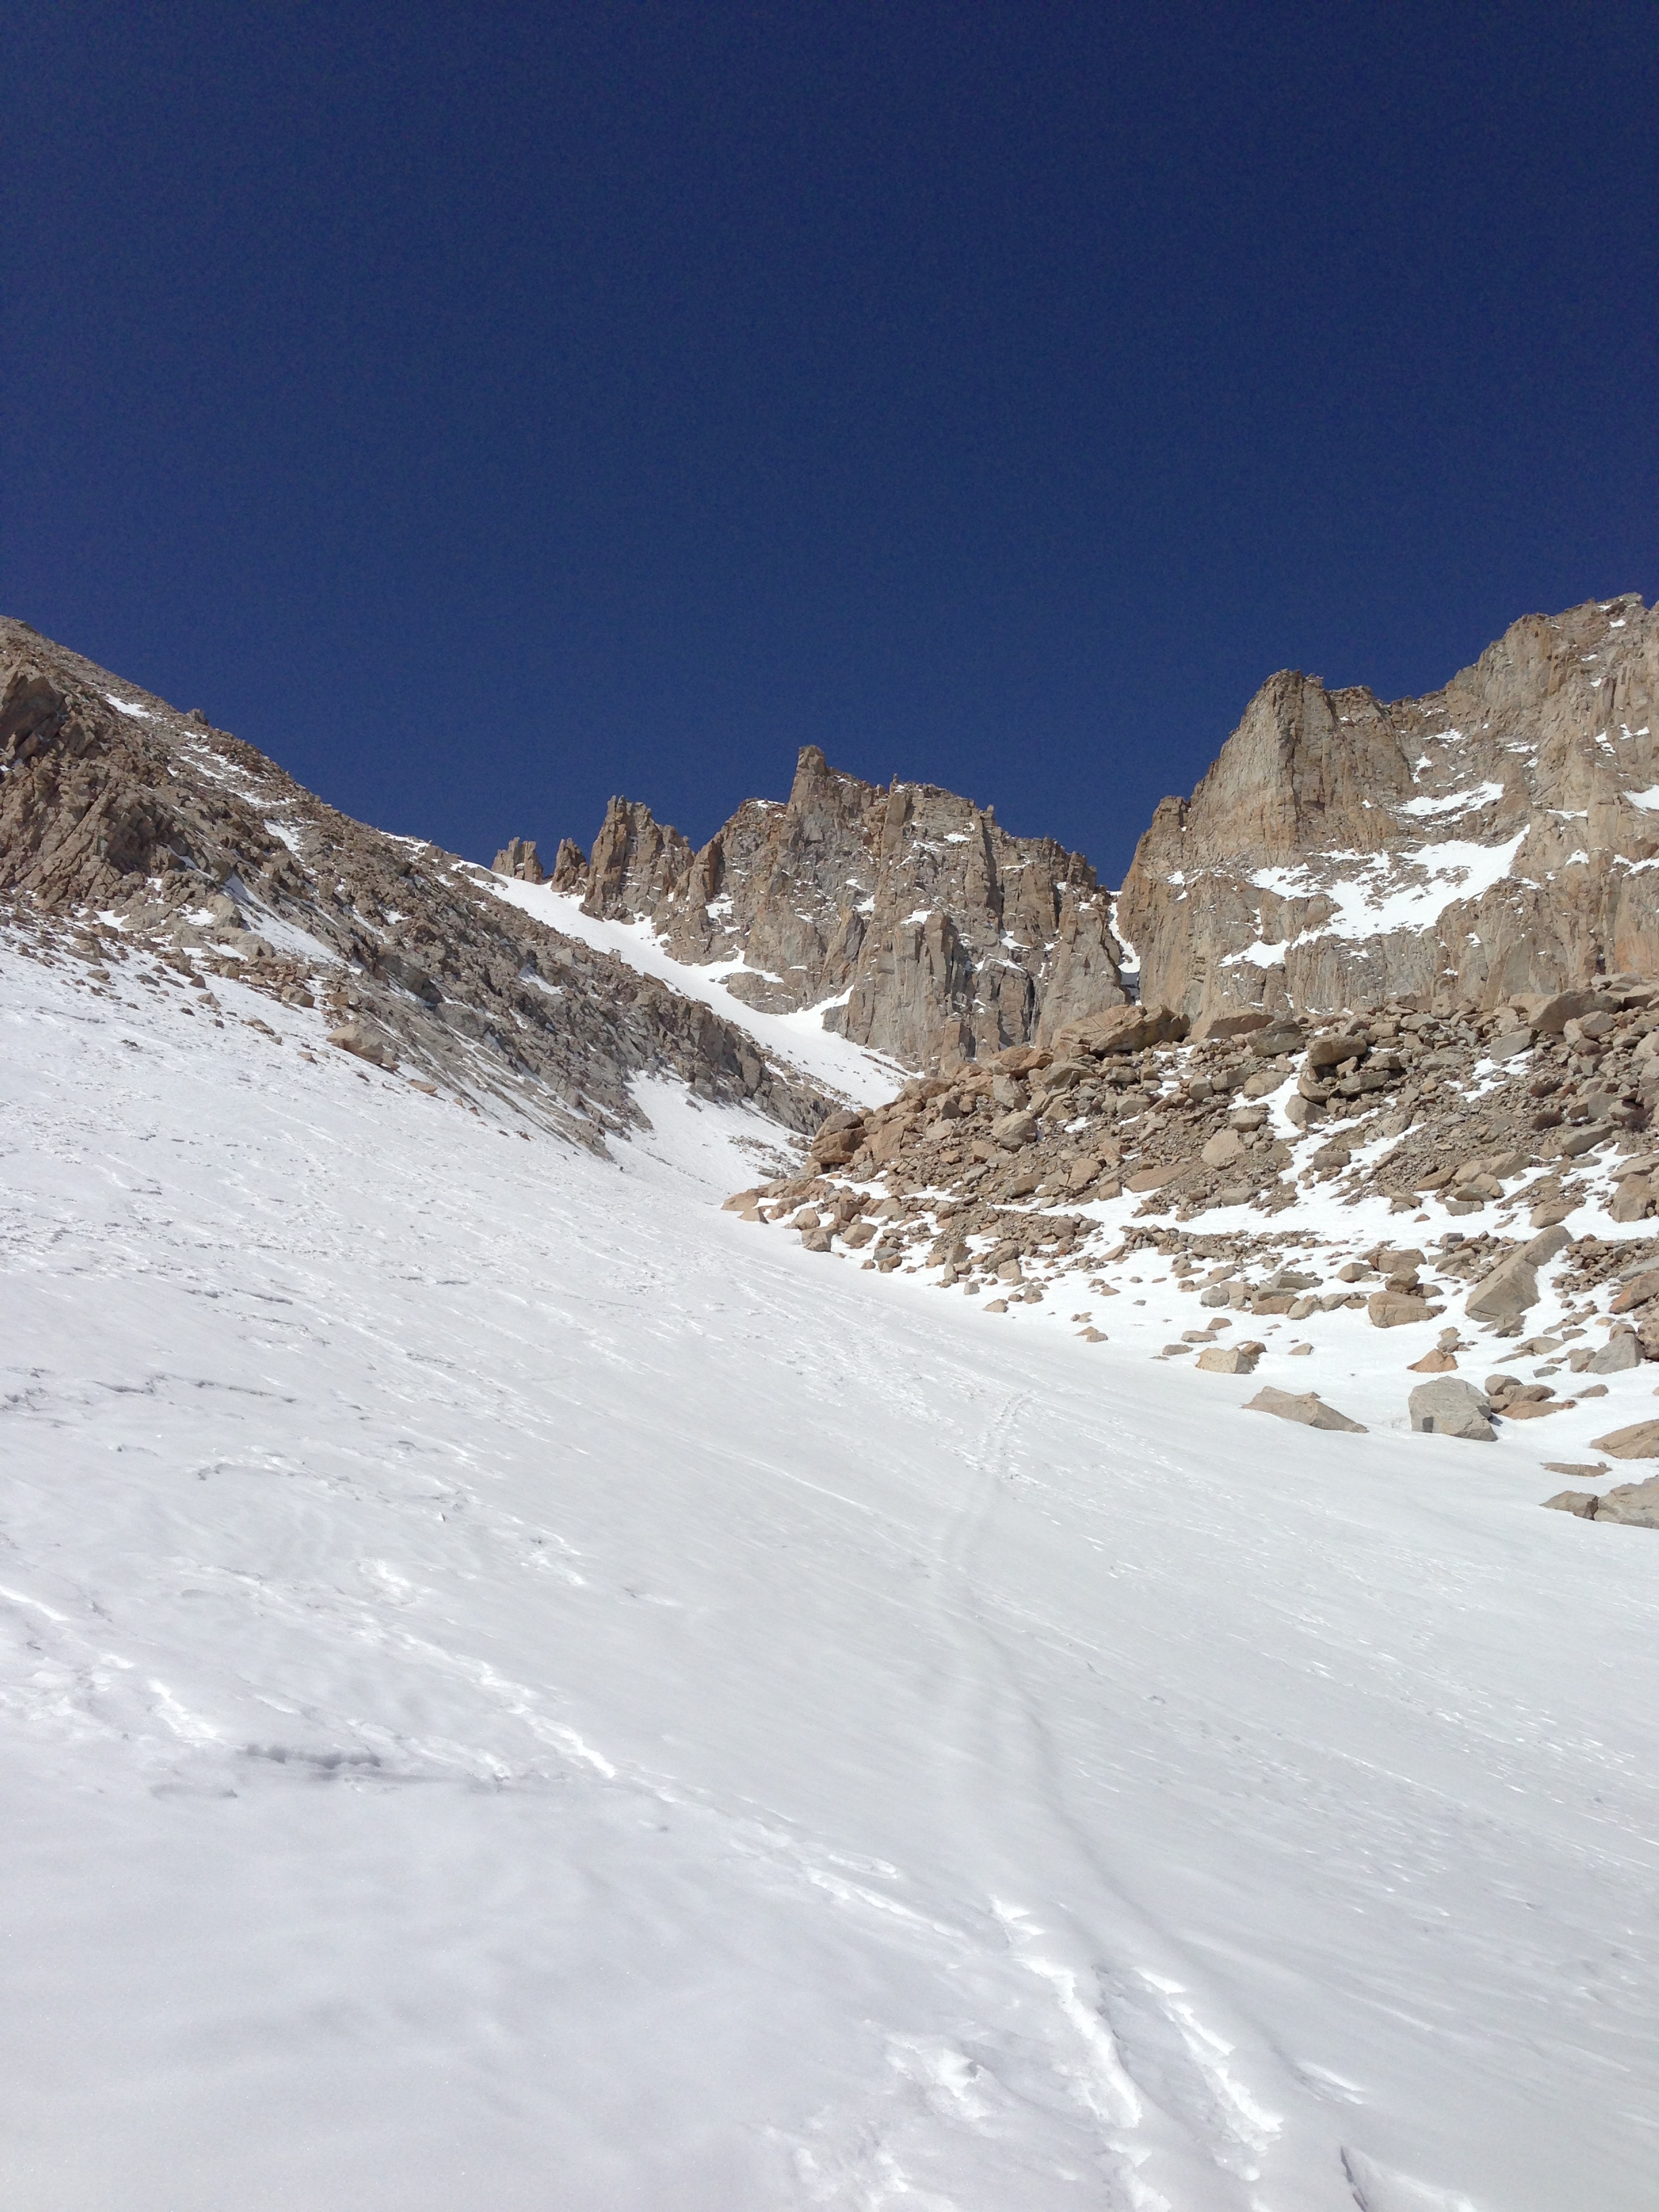 Heading up the chute, April 8, 2013, Mt. Whitney